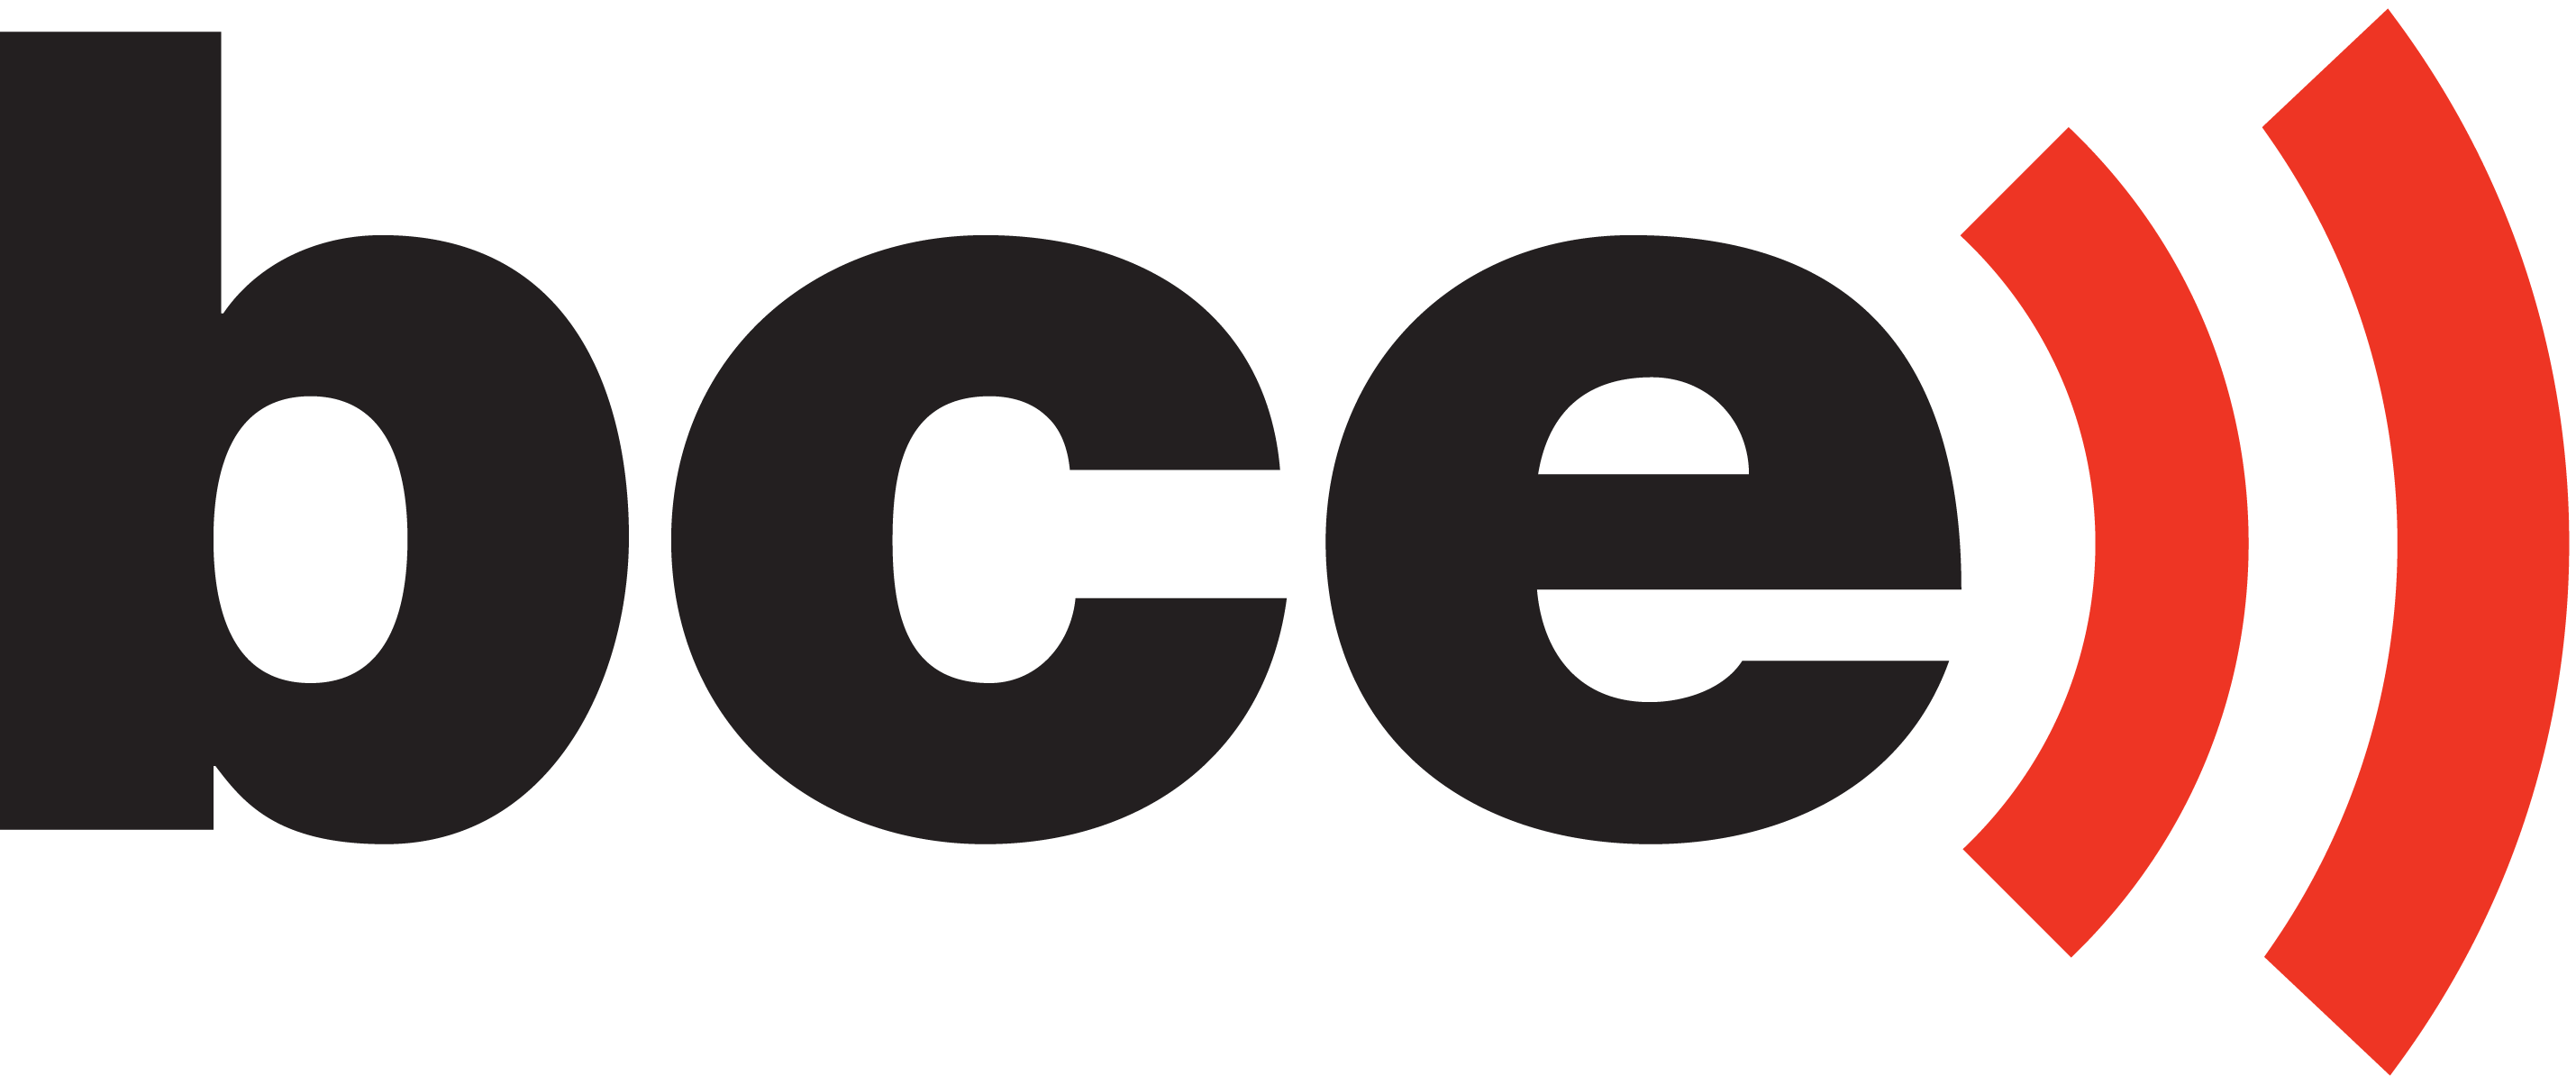 BCE Luxembourg